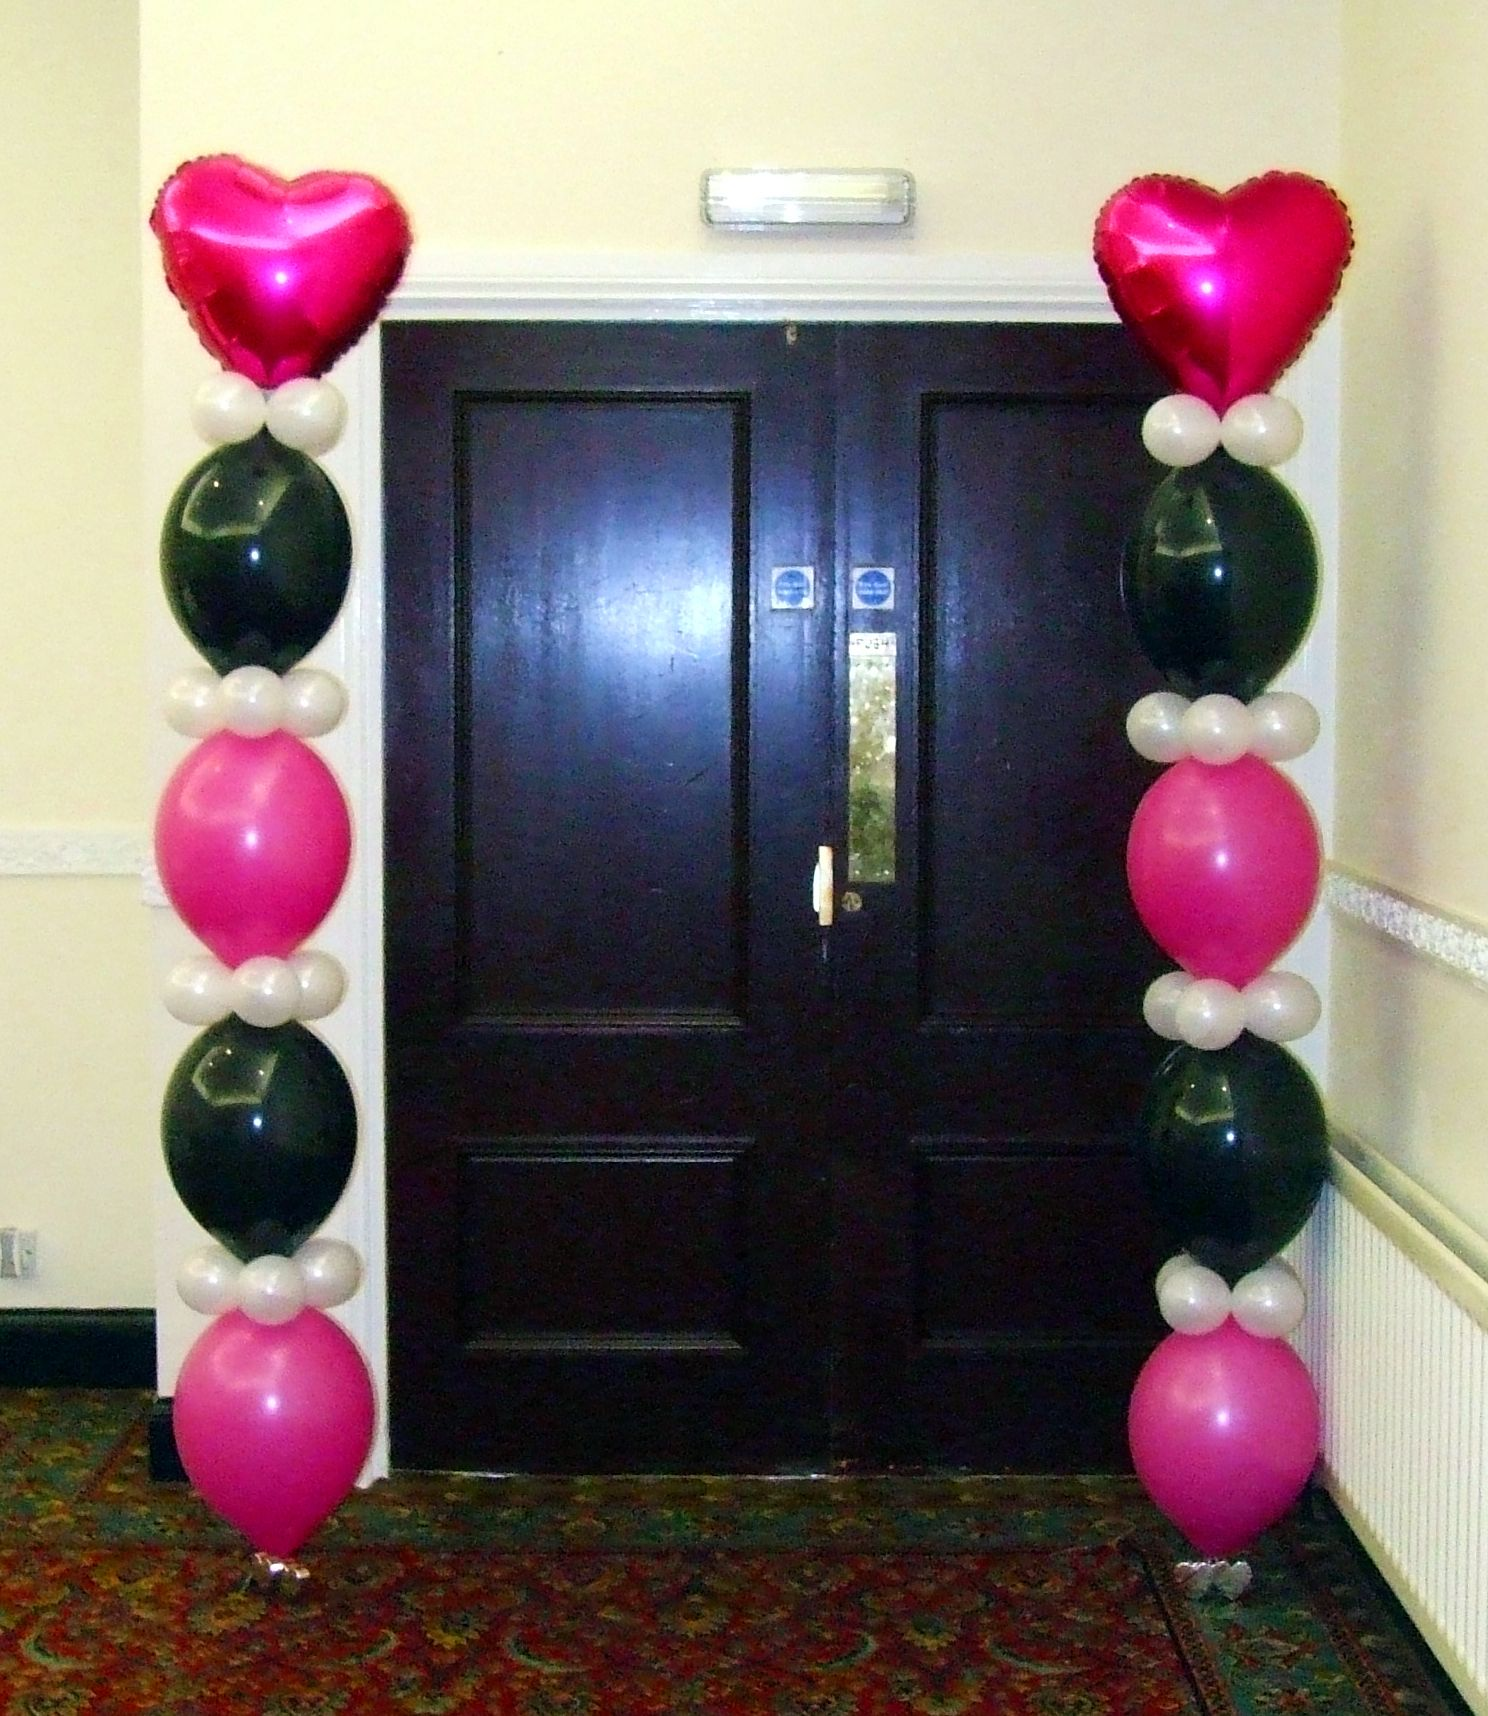 Best My Finishing Touch Balloon Artist And Event Decorations This Month